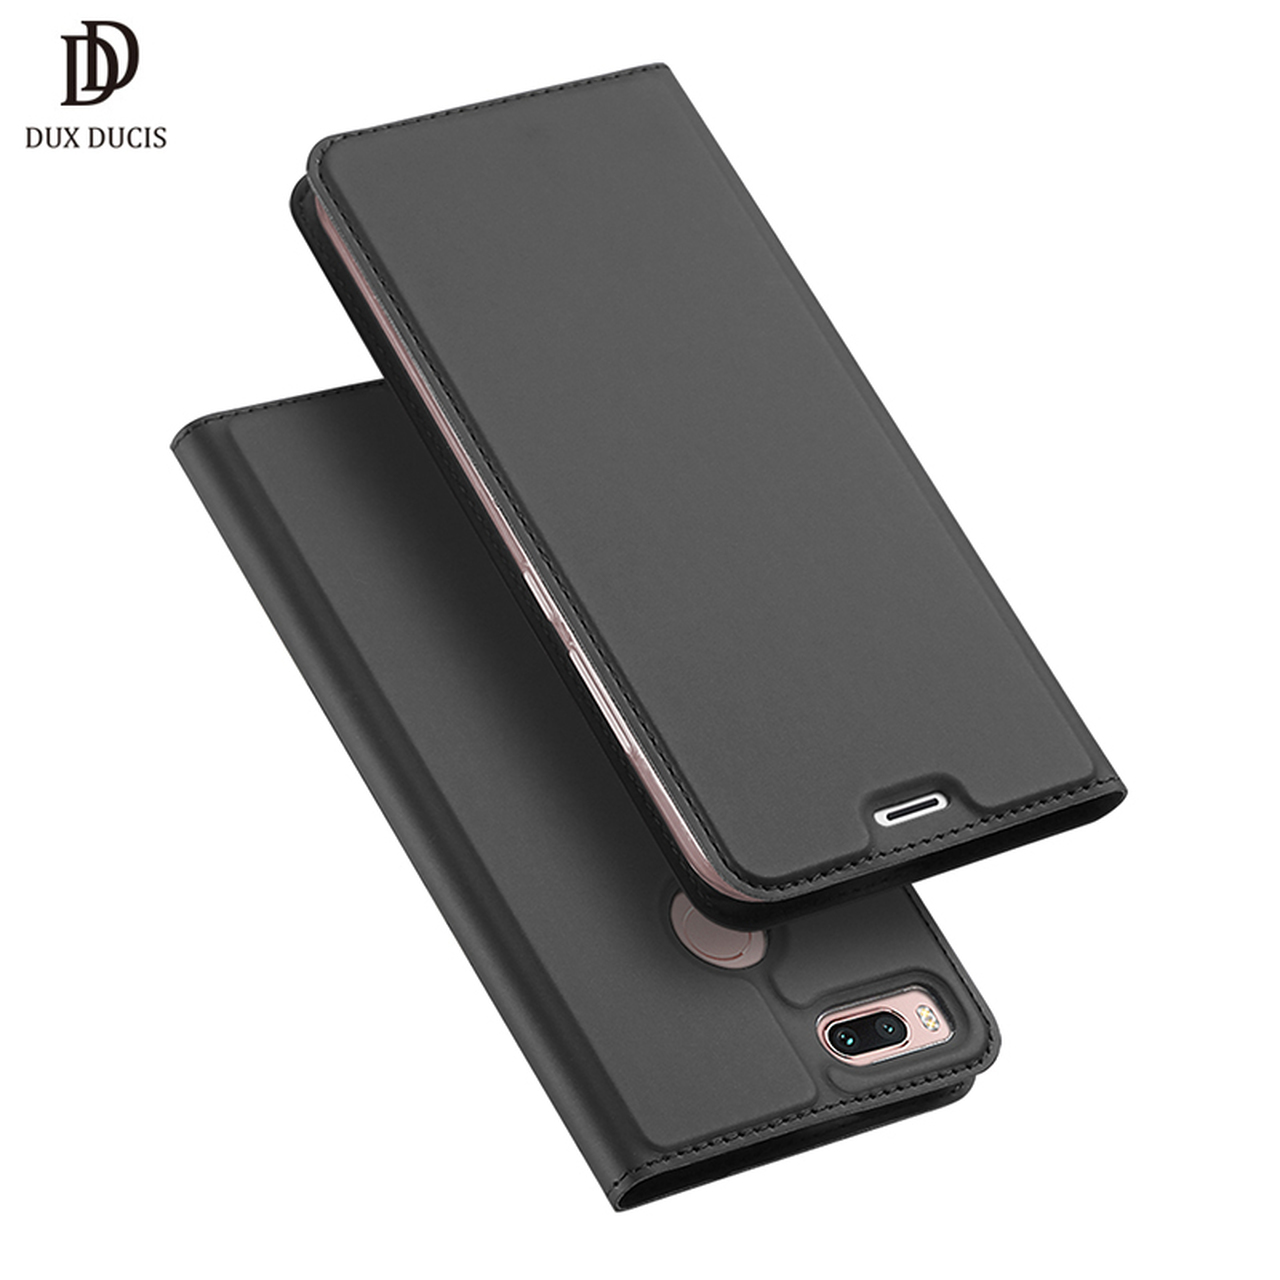 buy popular 44c94 6375f DUX DUCIS Leather Flip Case for Xiaomi Mi A1 Wallet Funda Book Phone Cover  for Xiaomi Mi A1 Global xiomi mia1 my a1 5x 5.5